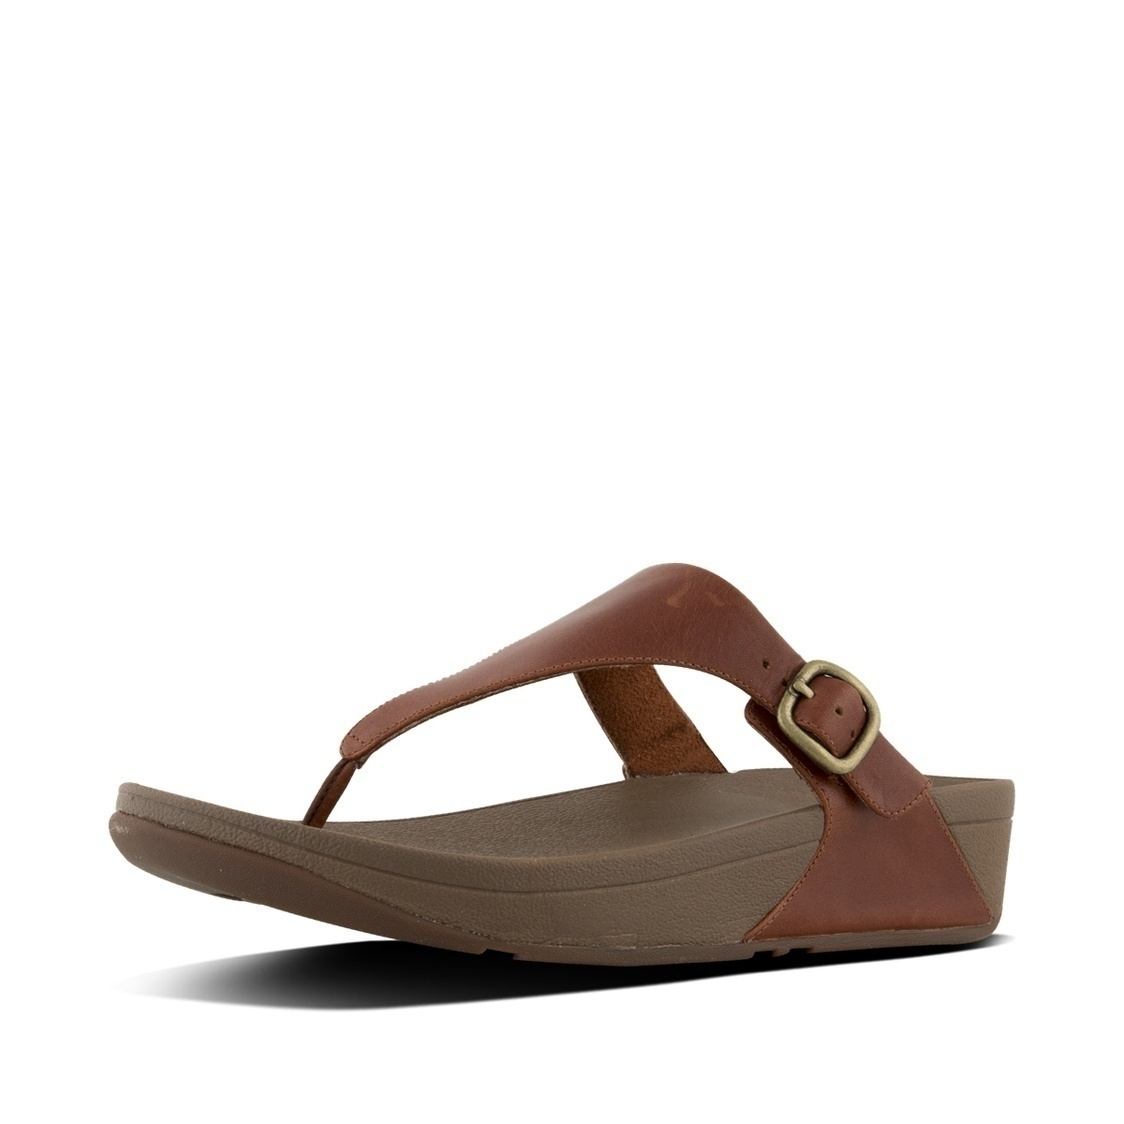 The Skinny Leather Toe-Thong Sandals